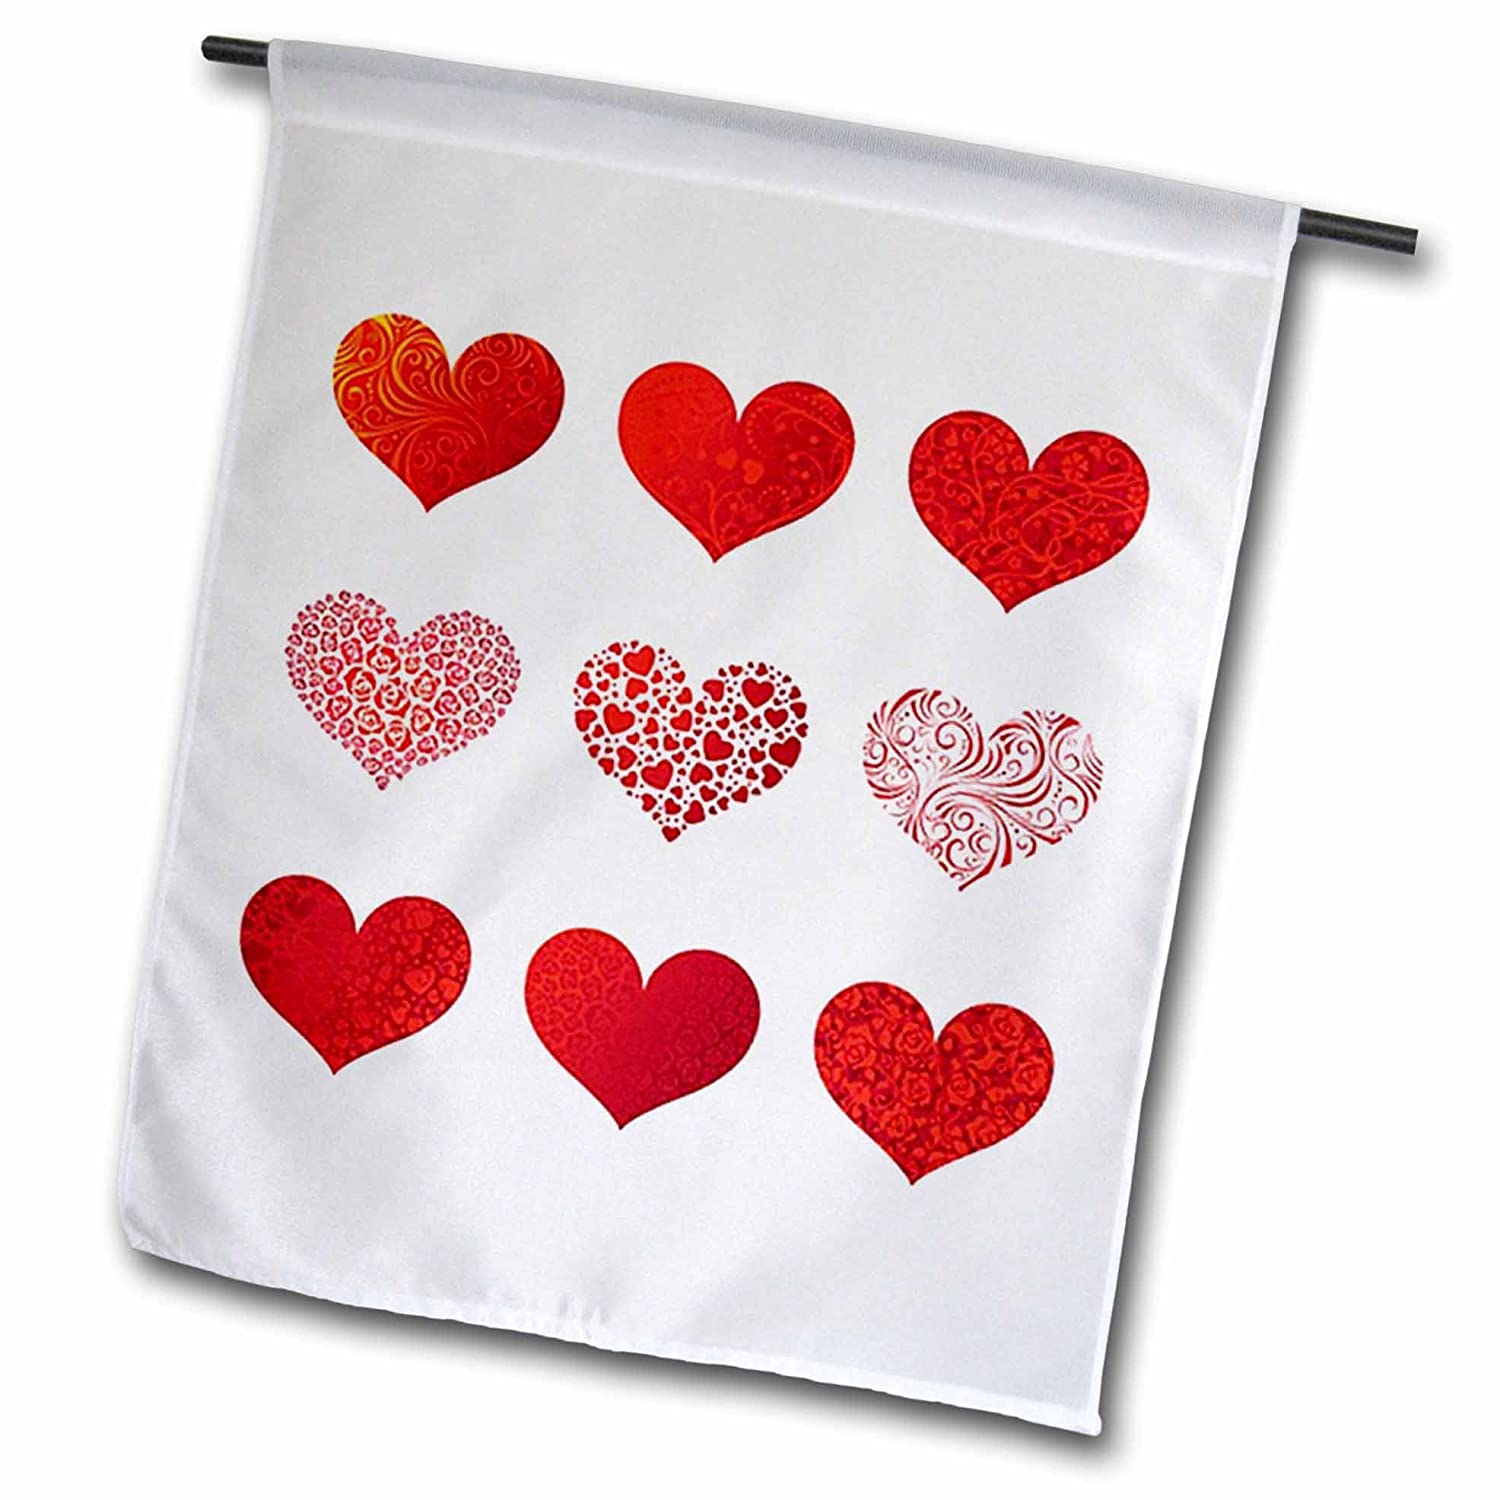 Valentine 9 Red Hearts Garden Flag, 12 By 18 Inch Valentine 9 Red Hearts  Flag Is A Creative Way To Celebrate All Year Round By Adding A Little Bit  Of Color ...